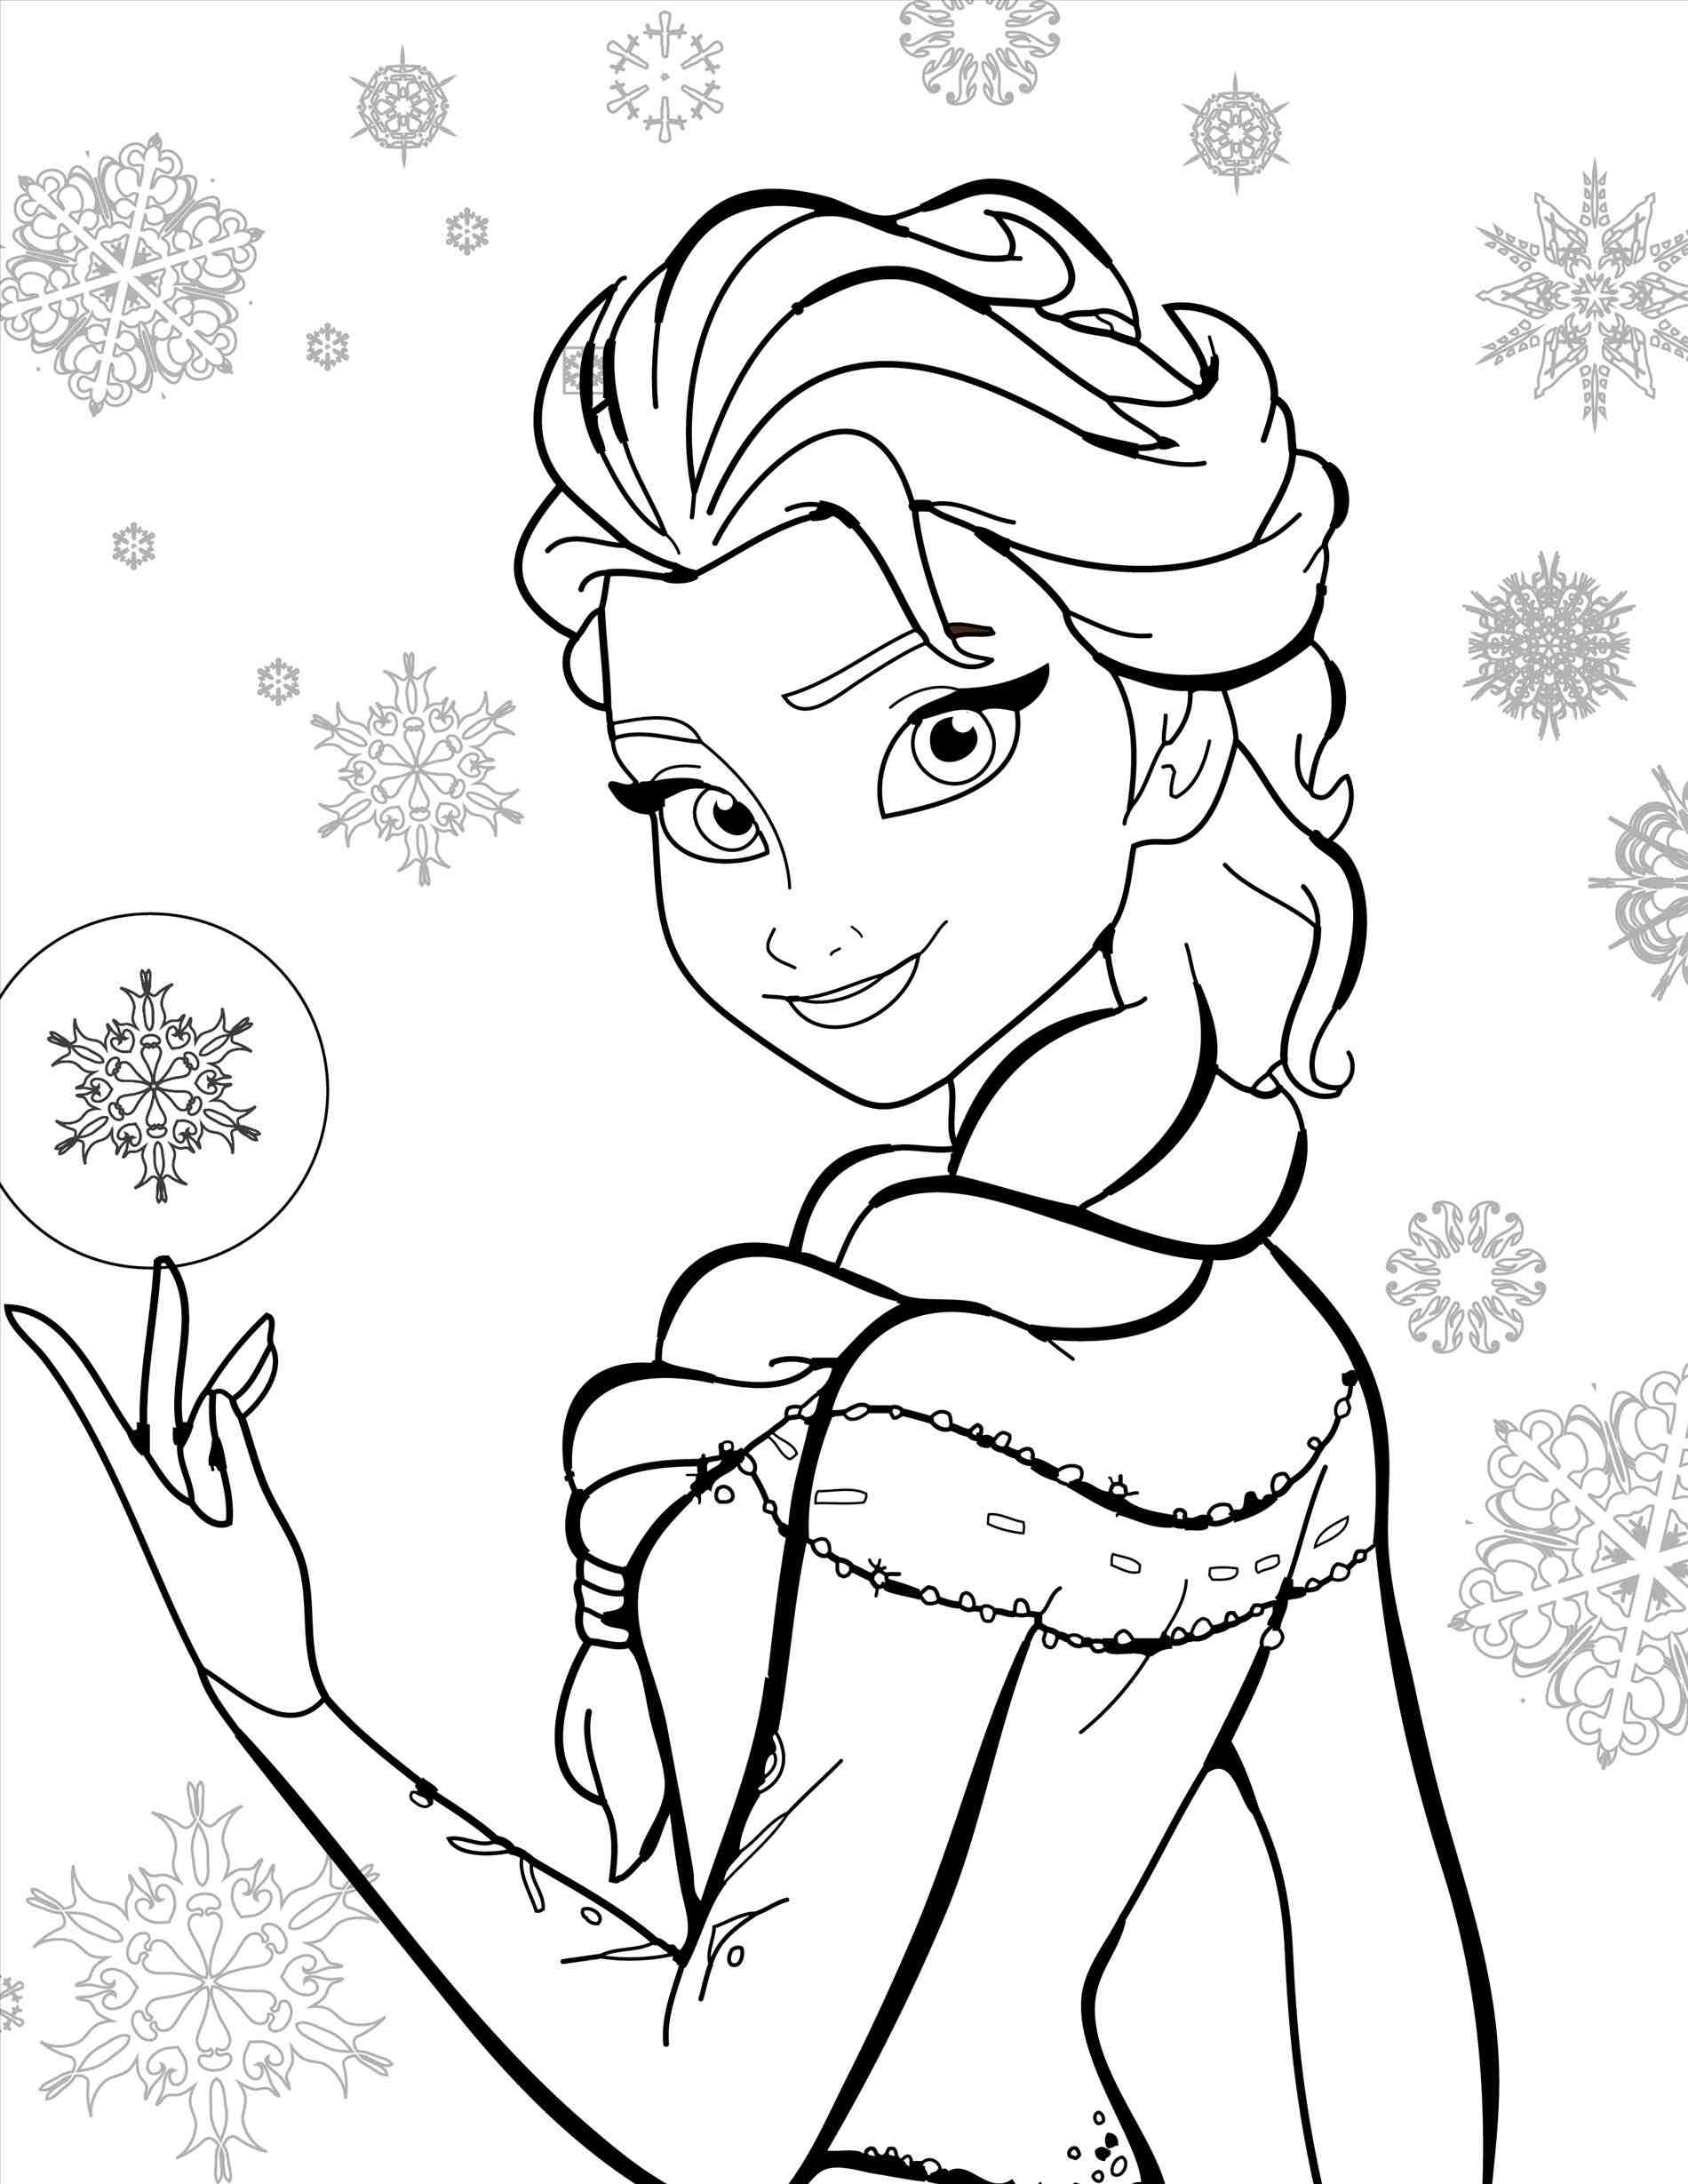 Frozen Drawing Anna And Elsa At Getdrawings Com Free For Personal